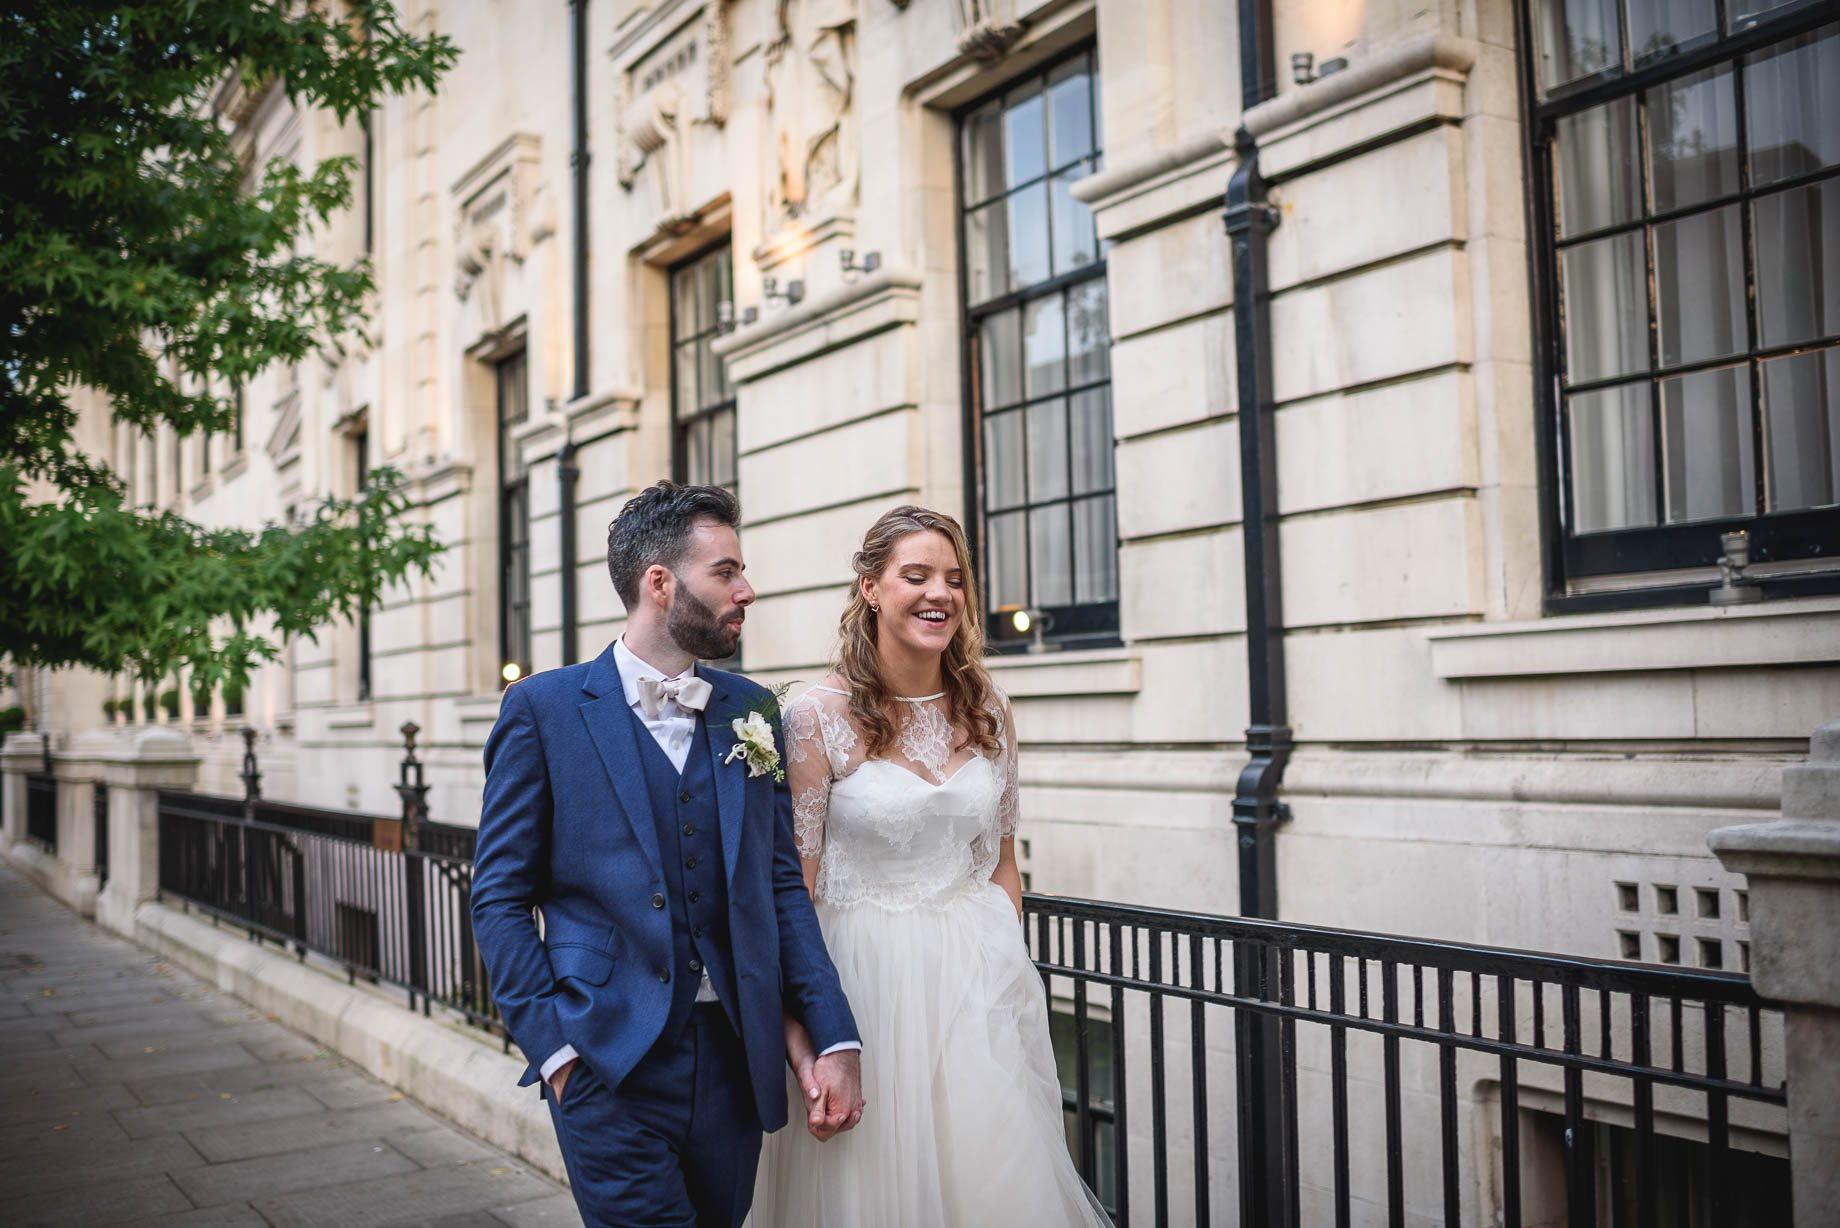 London Wedding Photography - Guy Collier Photography - LJ + Russell (131 of 155)